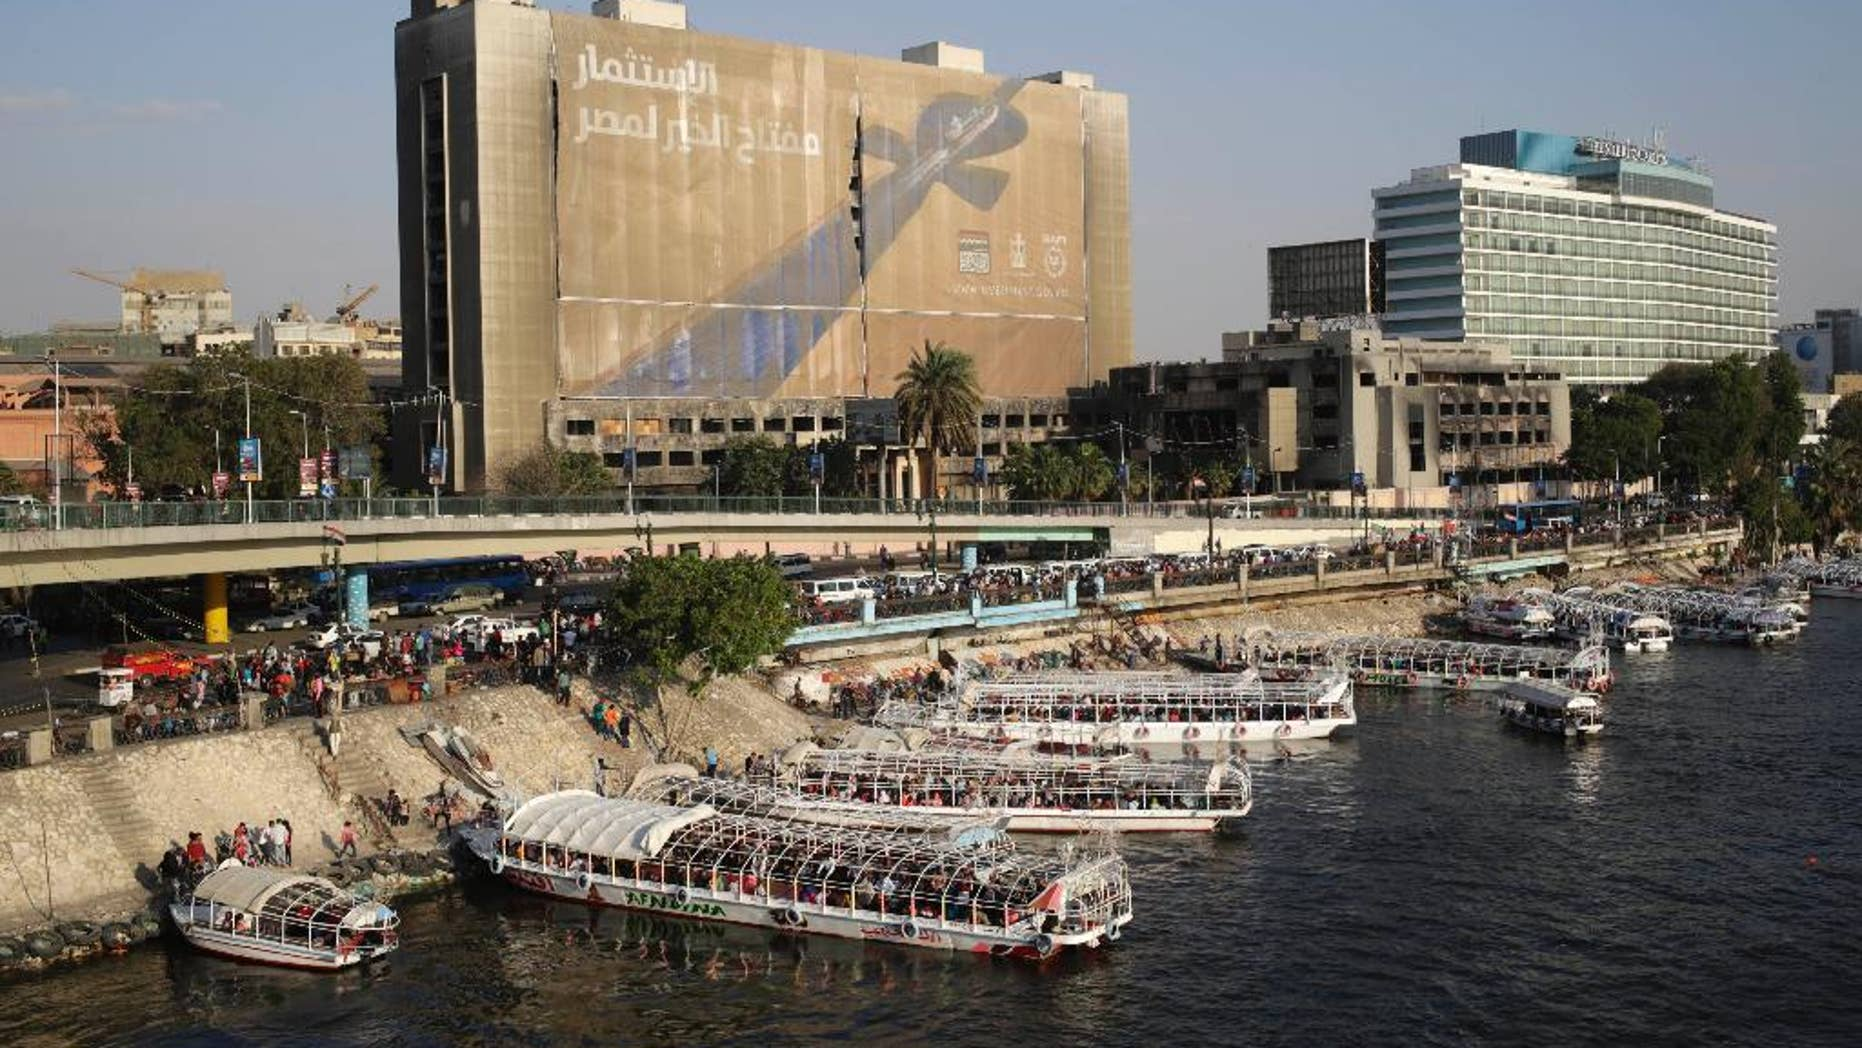 """April 14, 2015: A banner reading, """"Investment is the key to Egypt's welfare,"""" hangs from the former National Democratic Party (NDP) headquarters, which was torched during the 2011 uprising that ousted President Hosni Mubarak, in Cairo."""